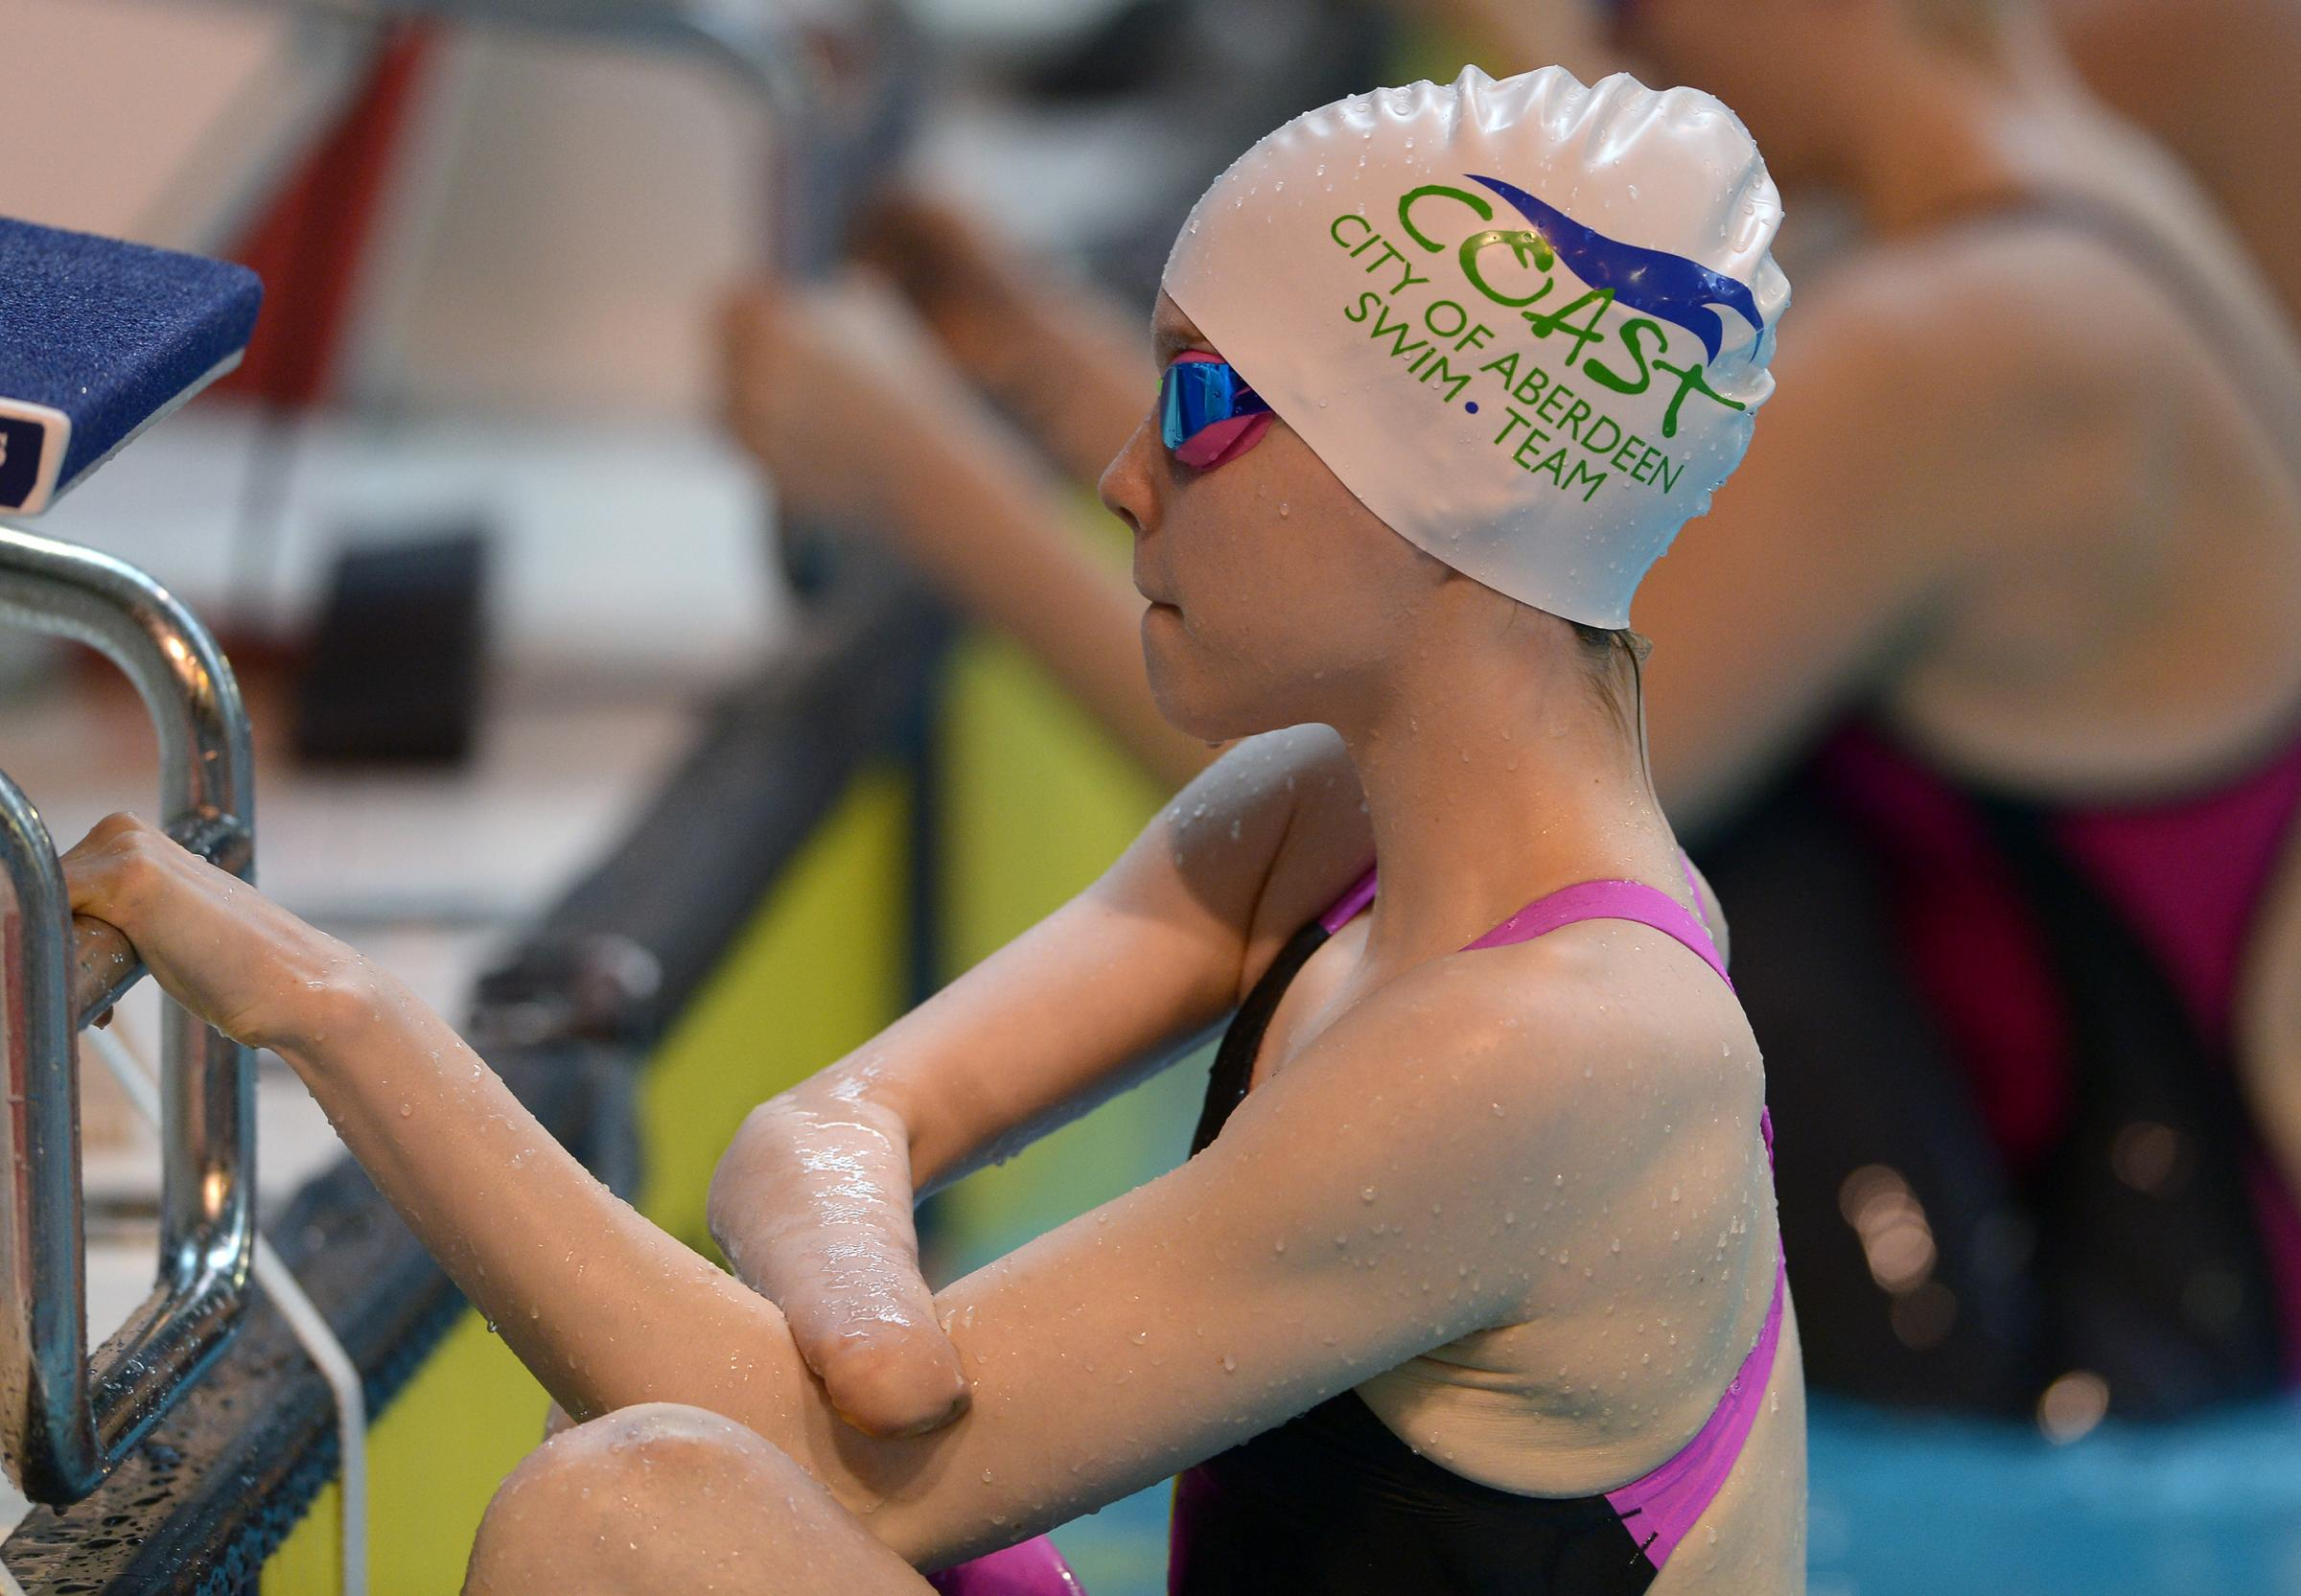 14 year-old Toni Shaw is headed to the Commonwealth Games. Credit: Neil Hanna Photography